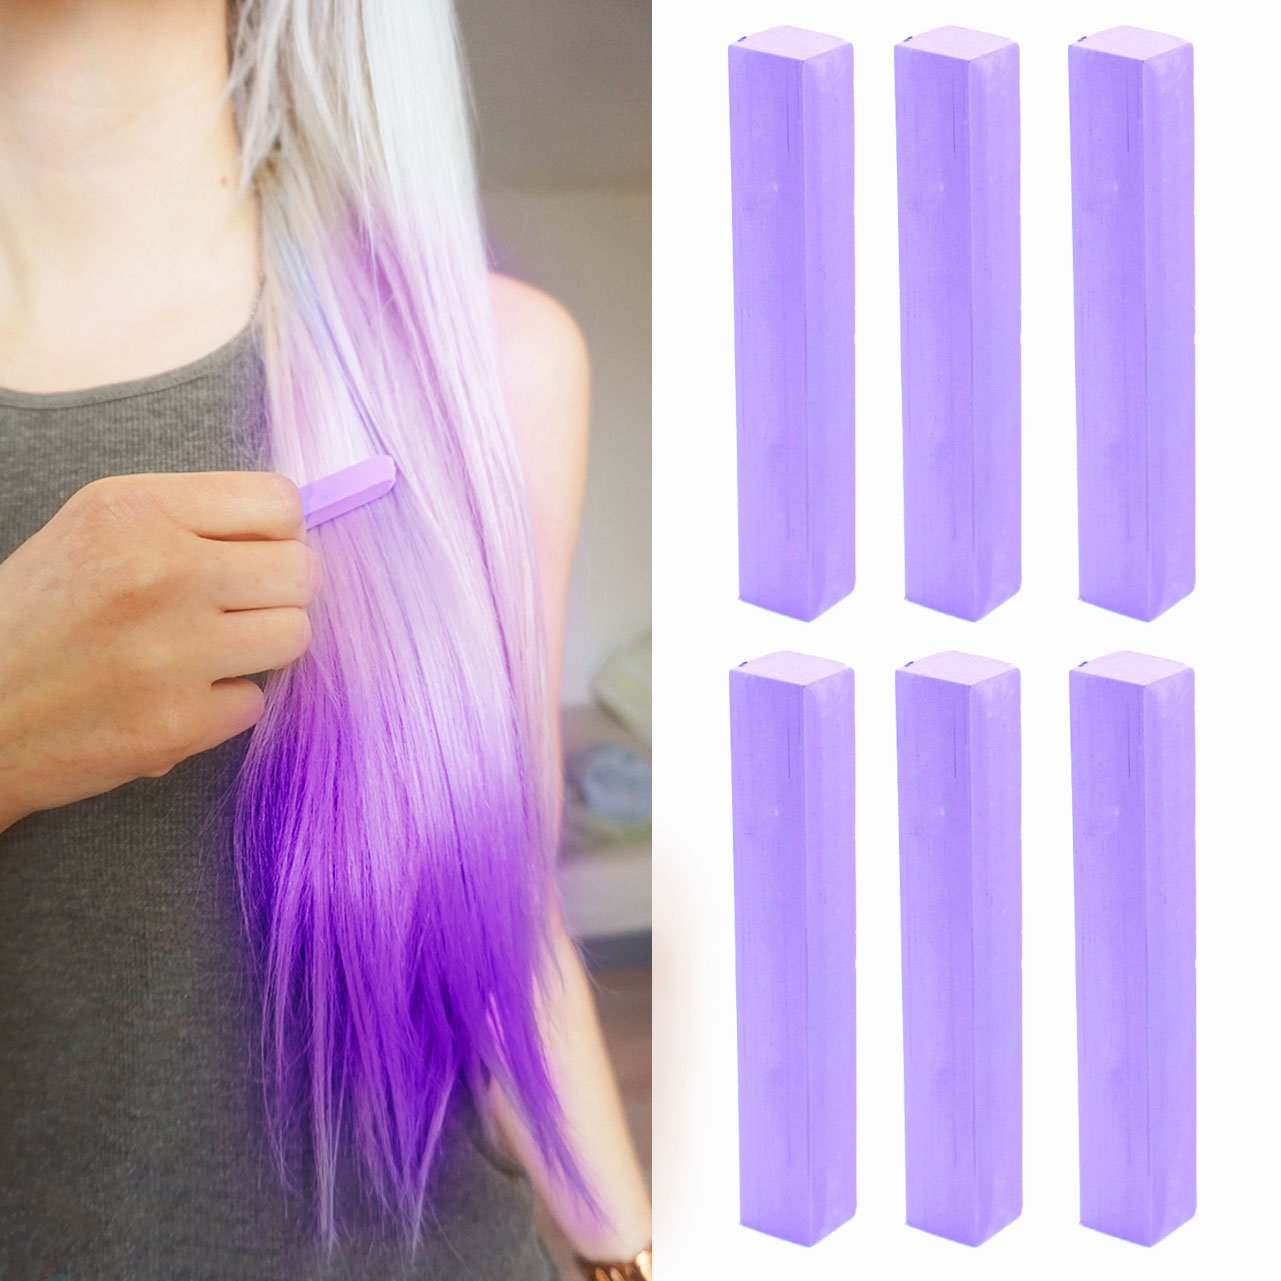 Cheap Lavender Hair Dye Find Lavender Hair Dye Deals On Line At